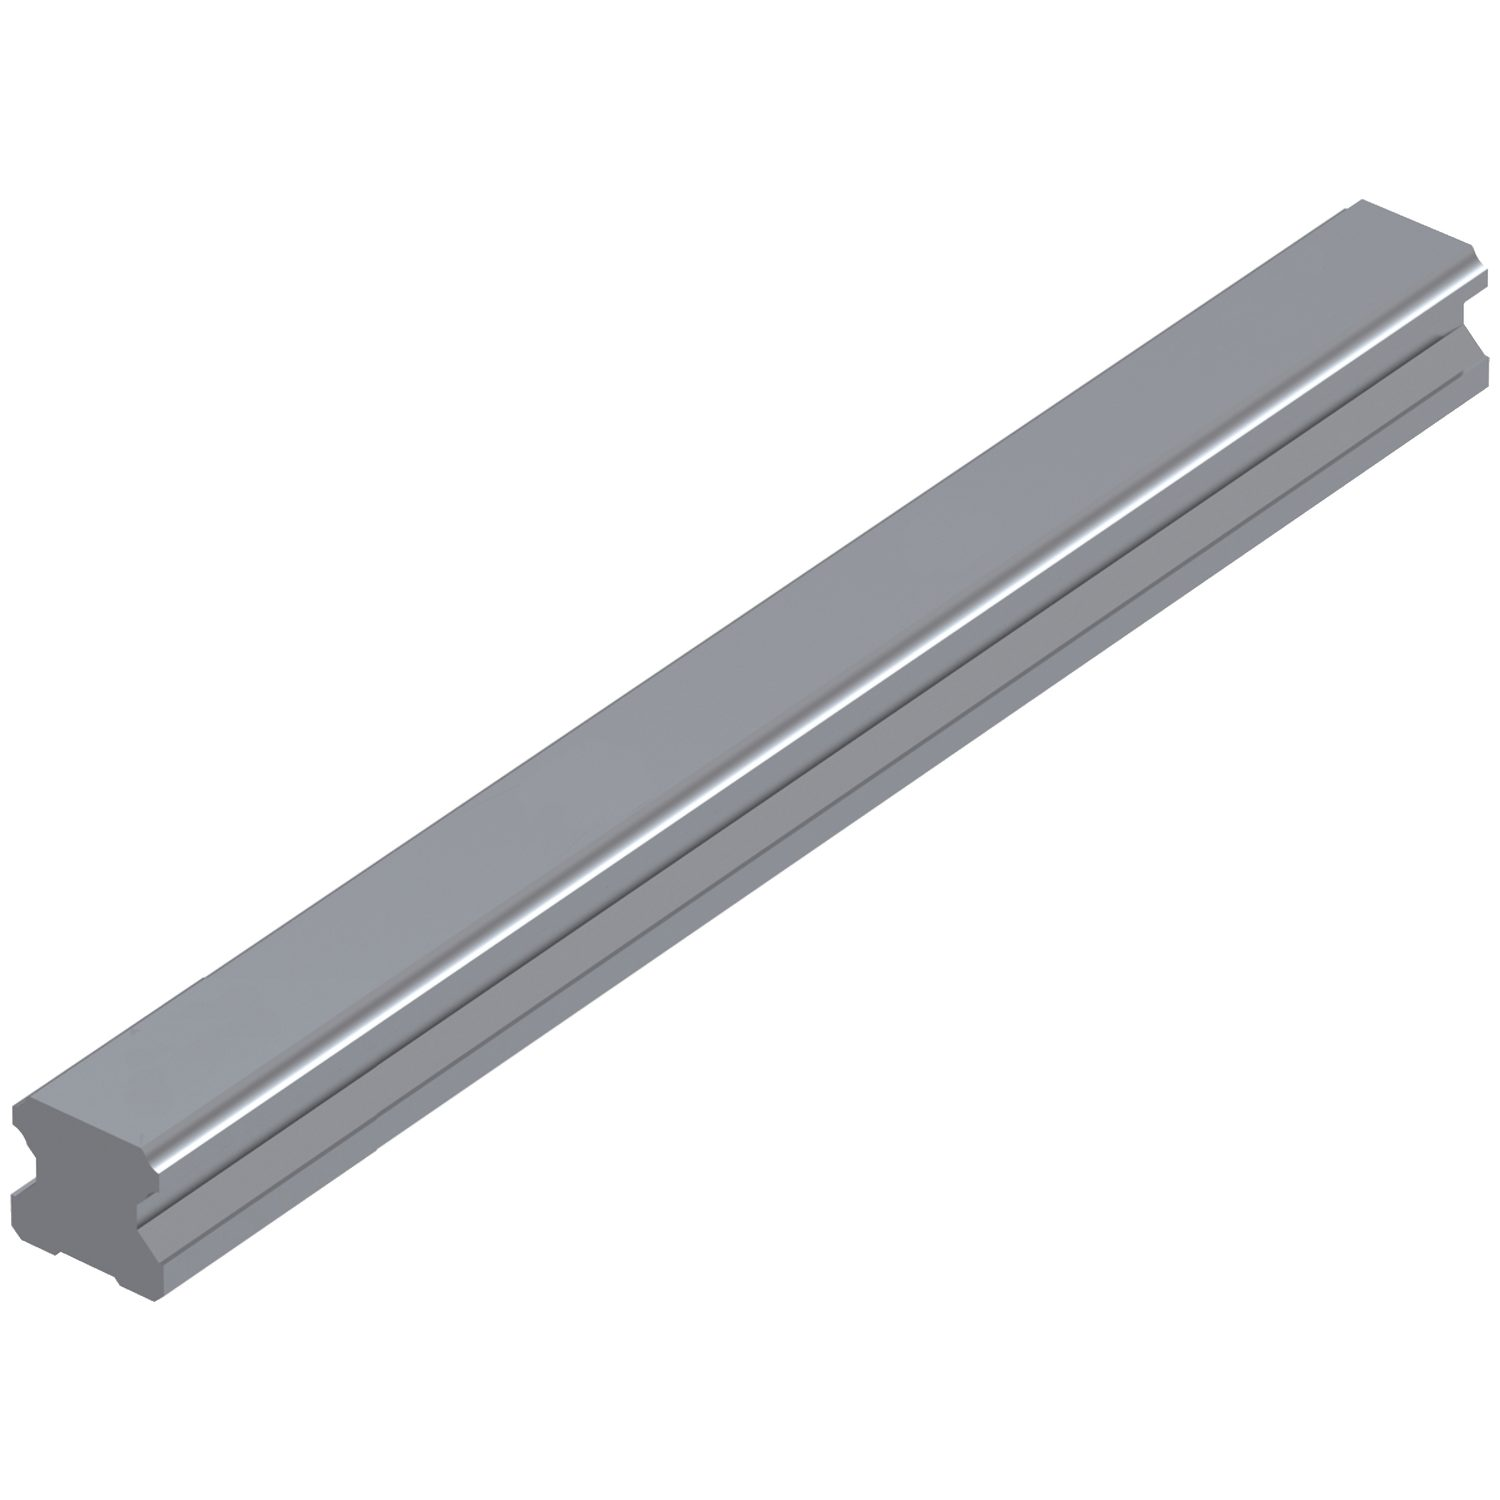 30mm Linear Guide Rail